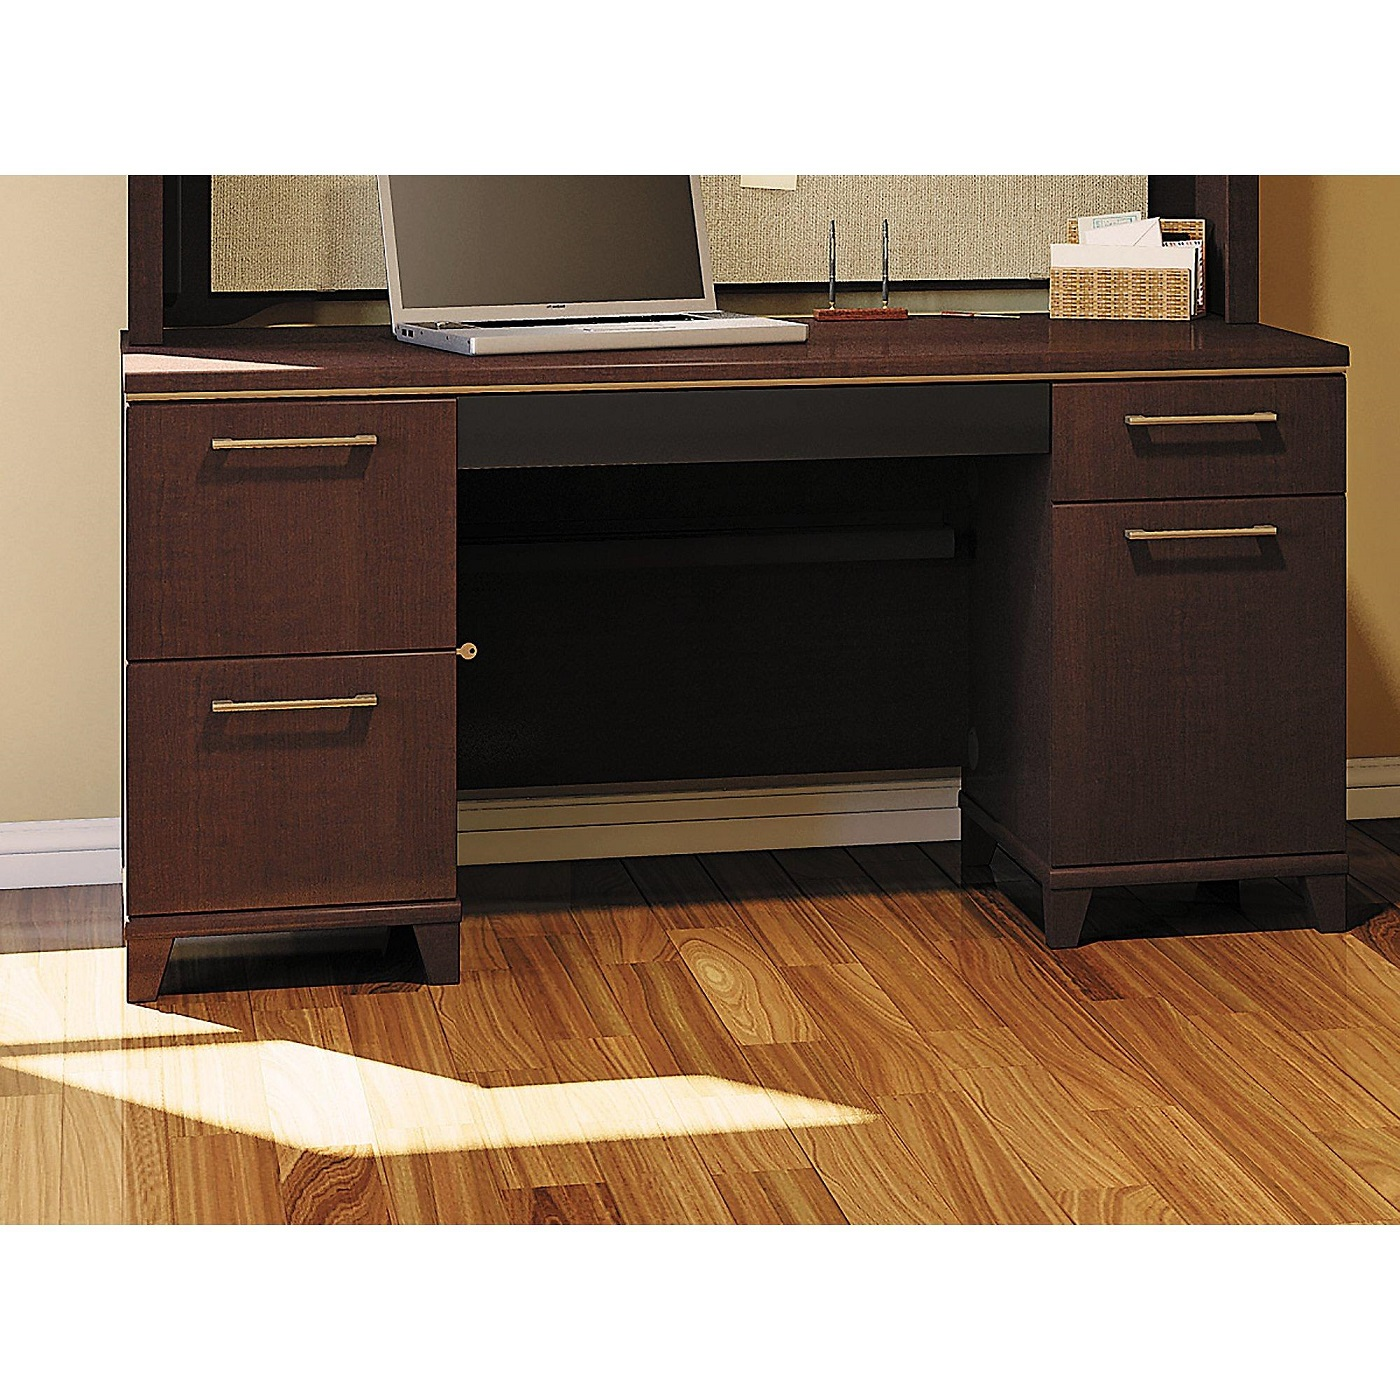 BUSH BUSINESS FURNITURE ENTERPRISE MOCHA CHERRY 60W OFFICE DESK WITH 2 PEDESTALS #EH-2960MC-03K:</b></font></font></b><br>&#x1F384<font color=red><b>ERGONOMICHOME.COM HOLIDAY SALE - ENDS DEC. 17, 2019</b></font>&#x1F384